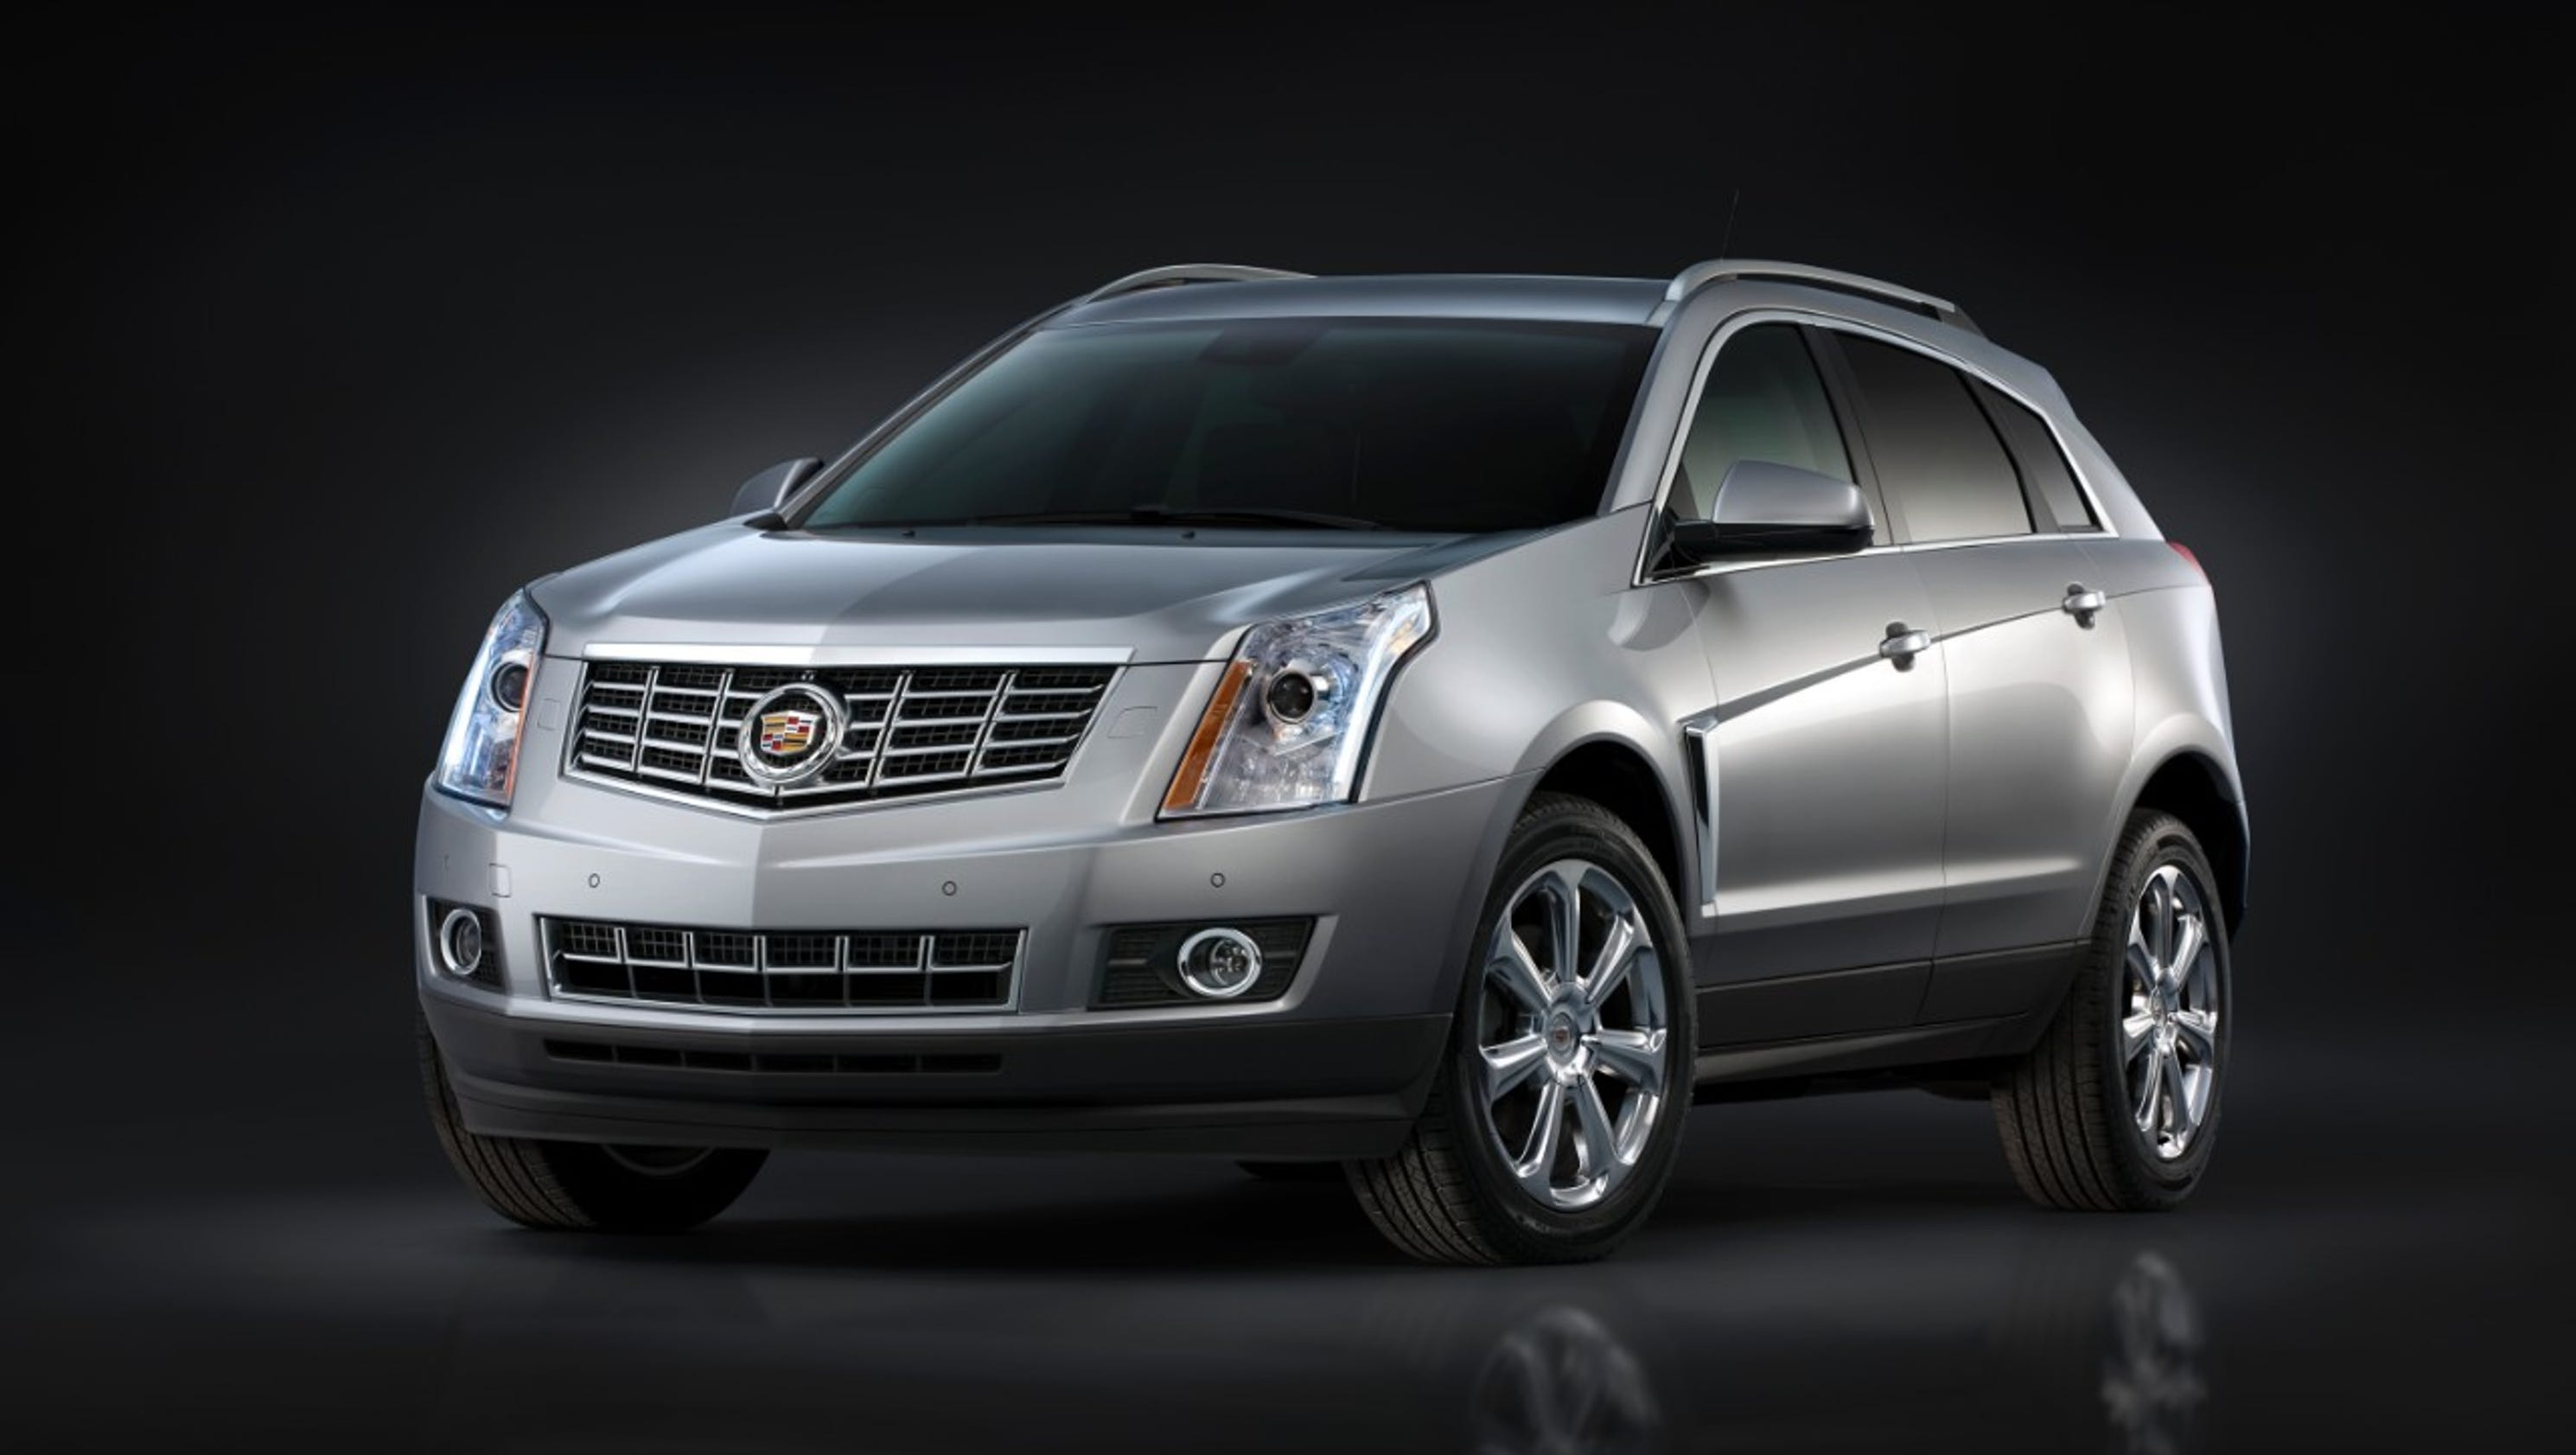 cadillac reviews srx rear autoweek notes premium suv article car collection review